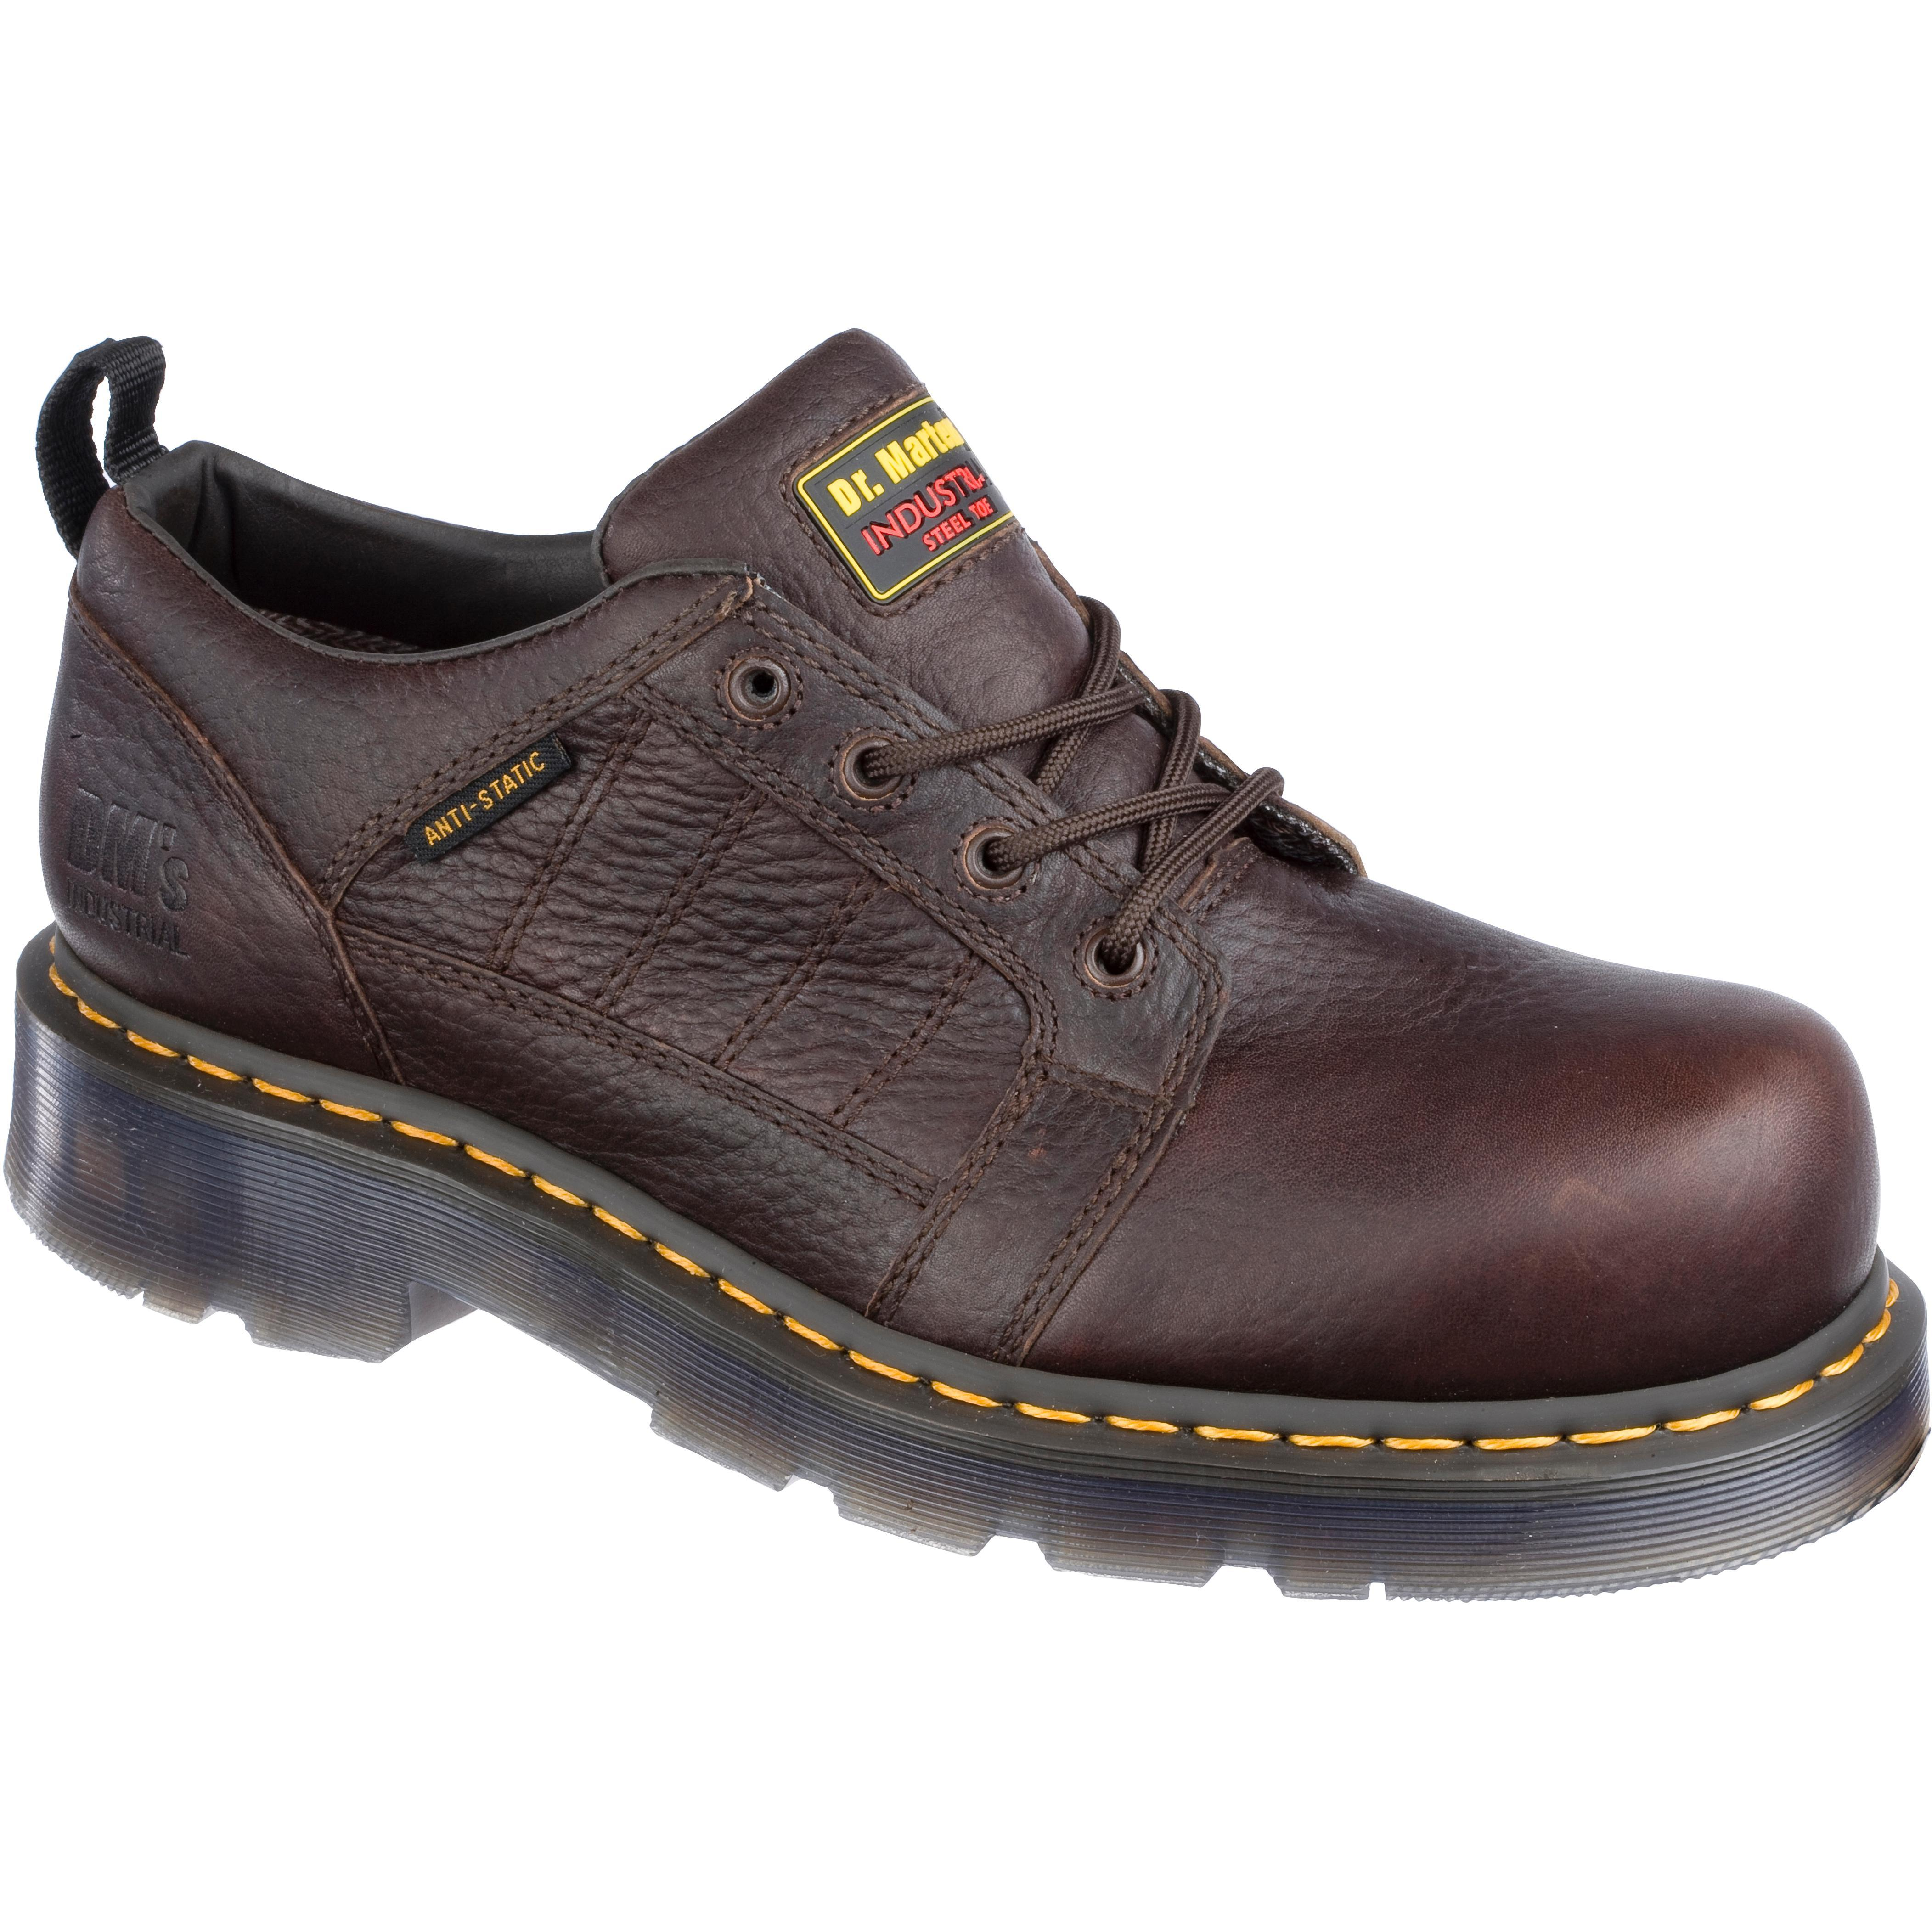 Dr. Martens Defender Steel Toe Static Dissipative Work Shoe, , large